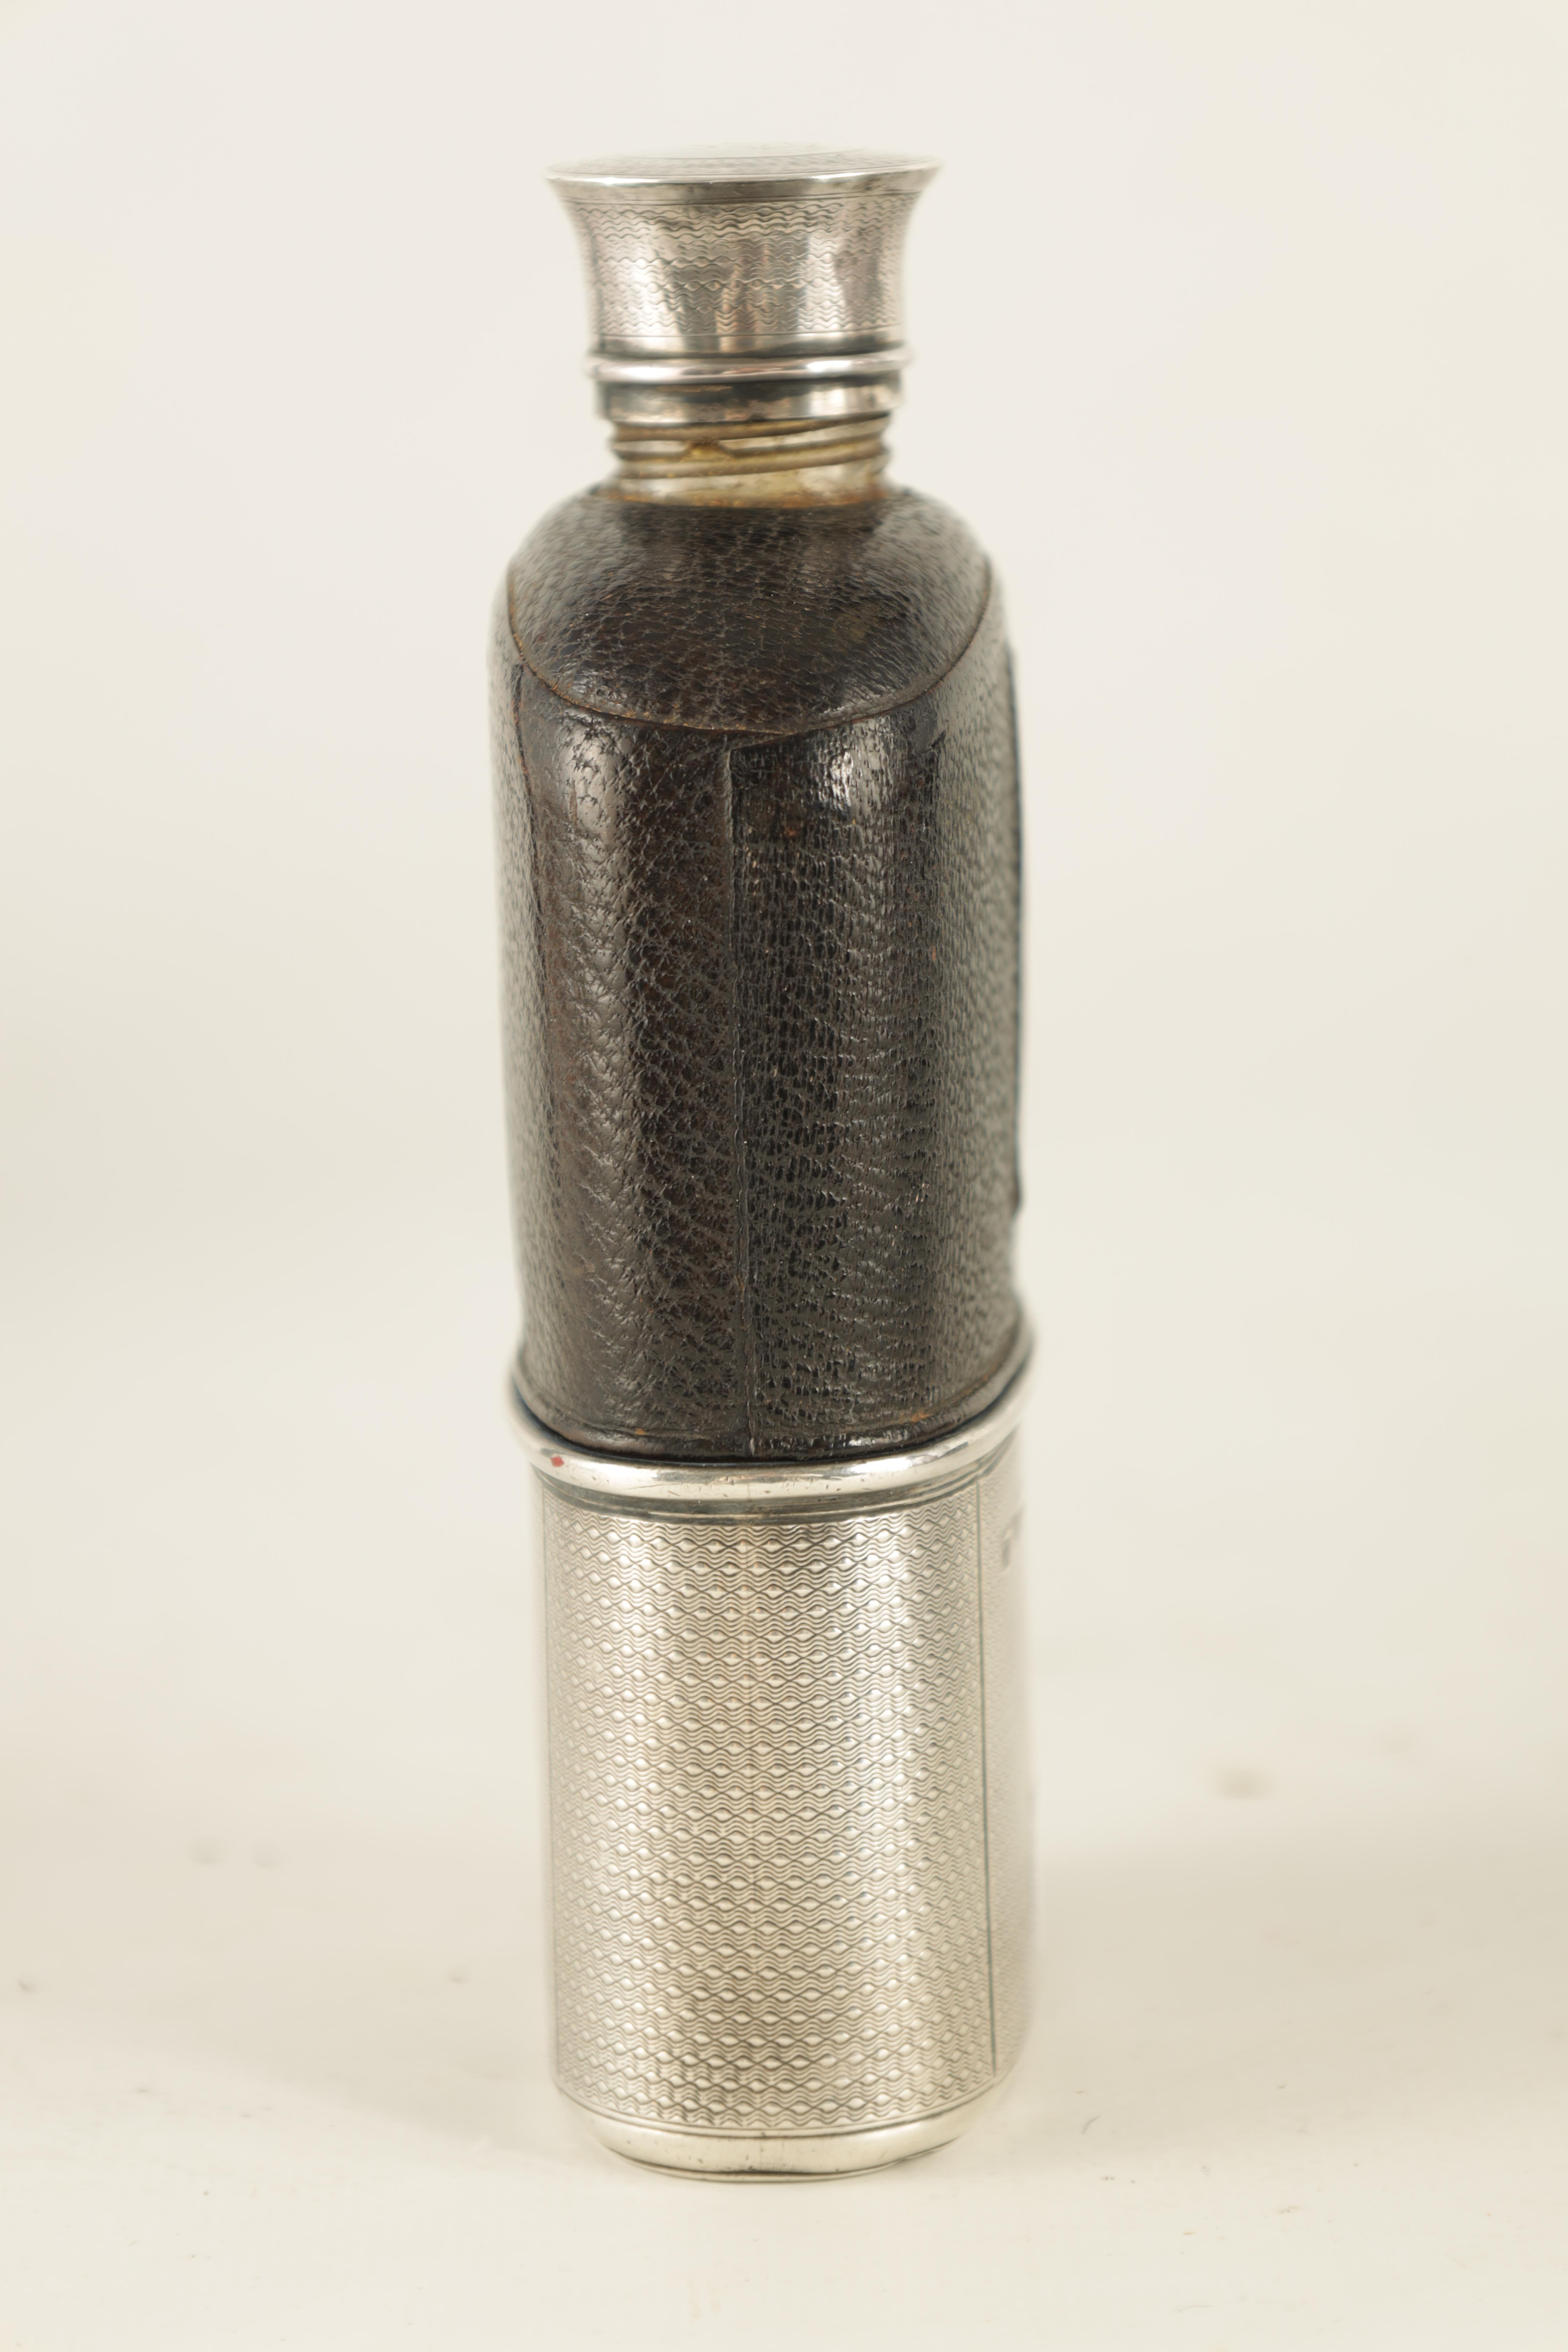 A VICTORIAN SILVER AND MOROCCAN LEATHER HIP FLASK RETAILED BY ASPREY 186 BOND STREET with engine- - Image 5 of 8